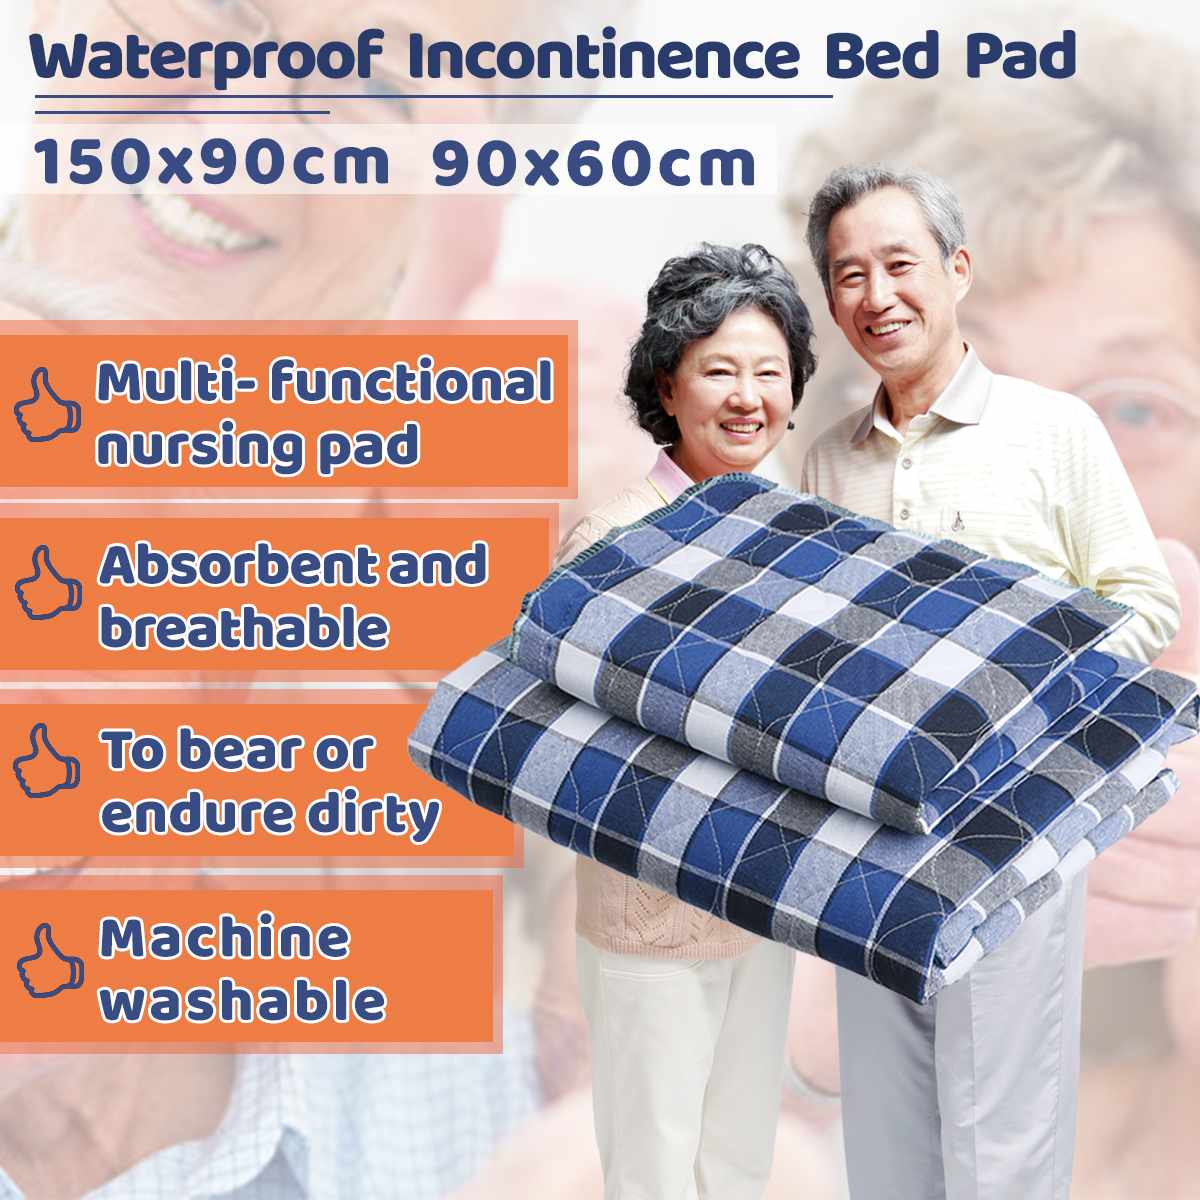 Kids Adult Mattress Cover Washable Reusable Protector Waterproof Underpad Bed Pad For Incontinence Patient Pad Cover Mattress